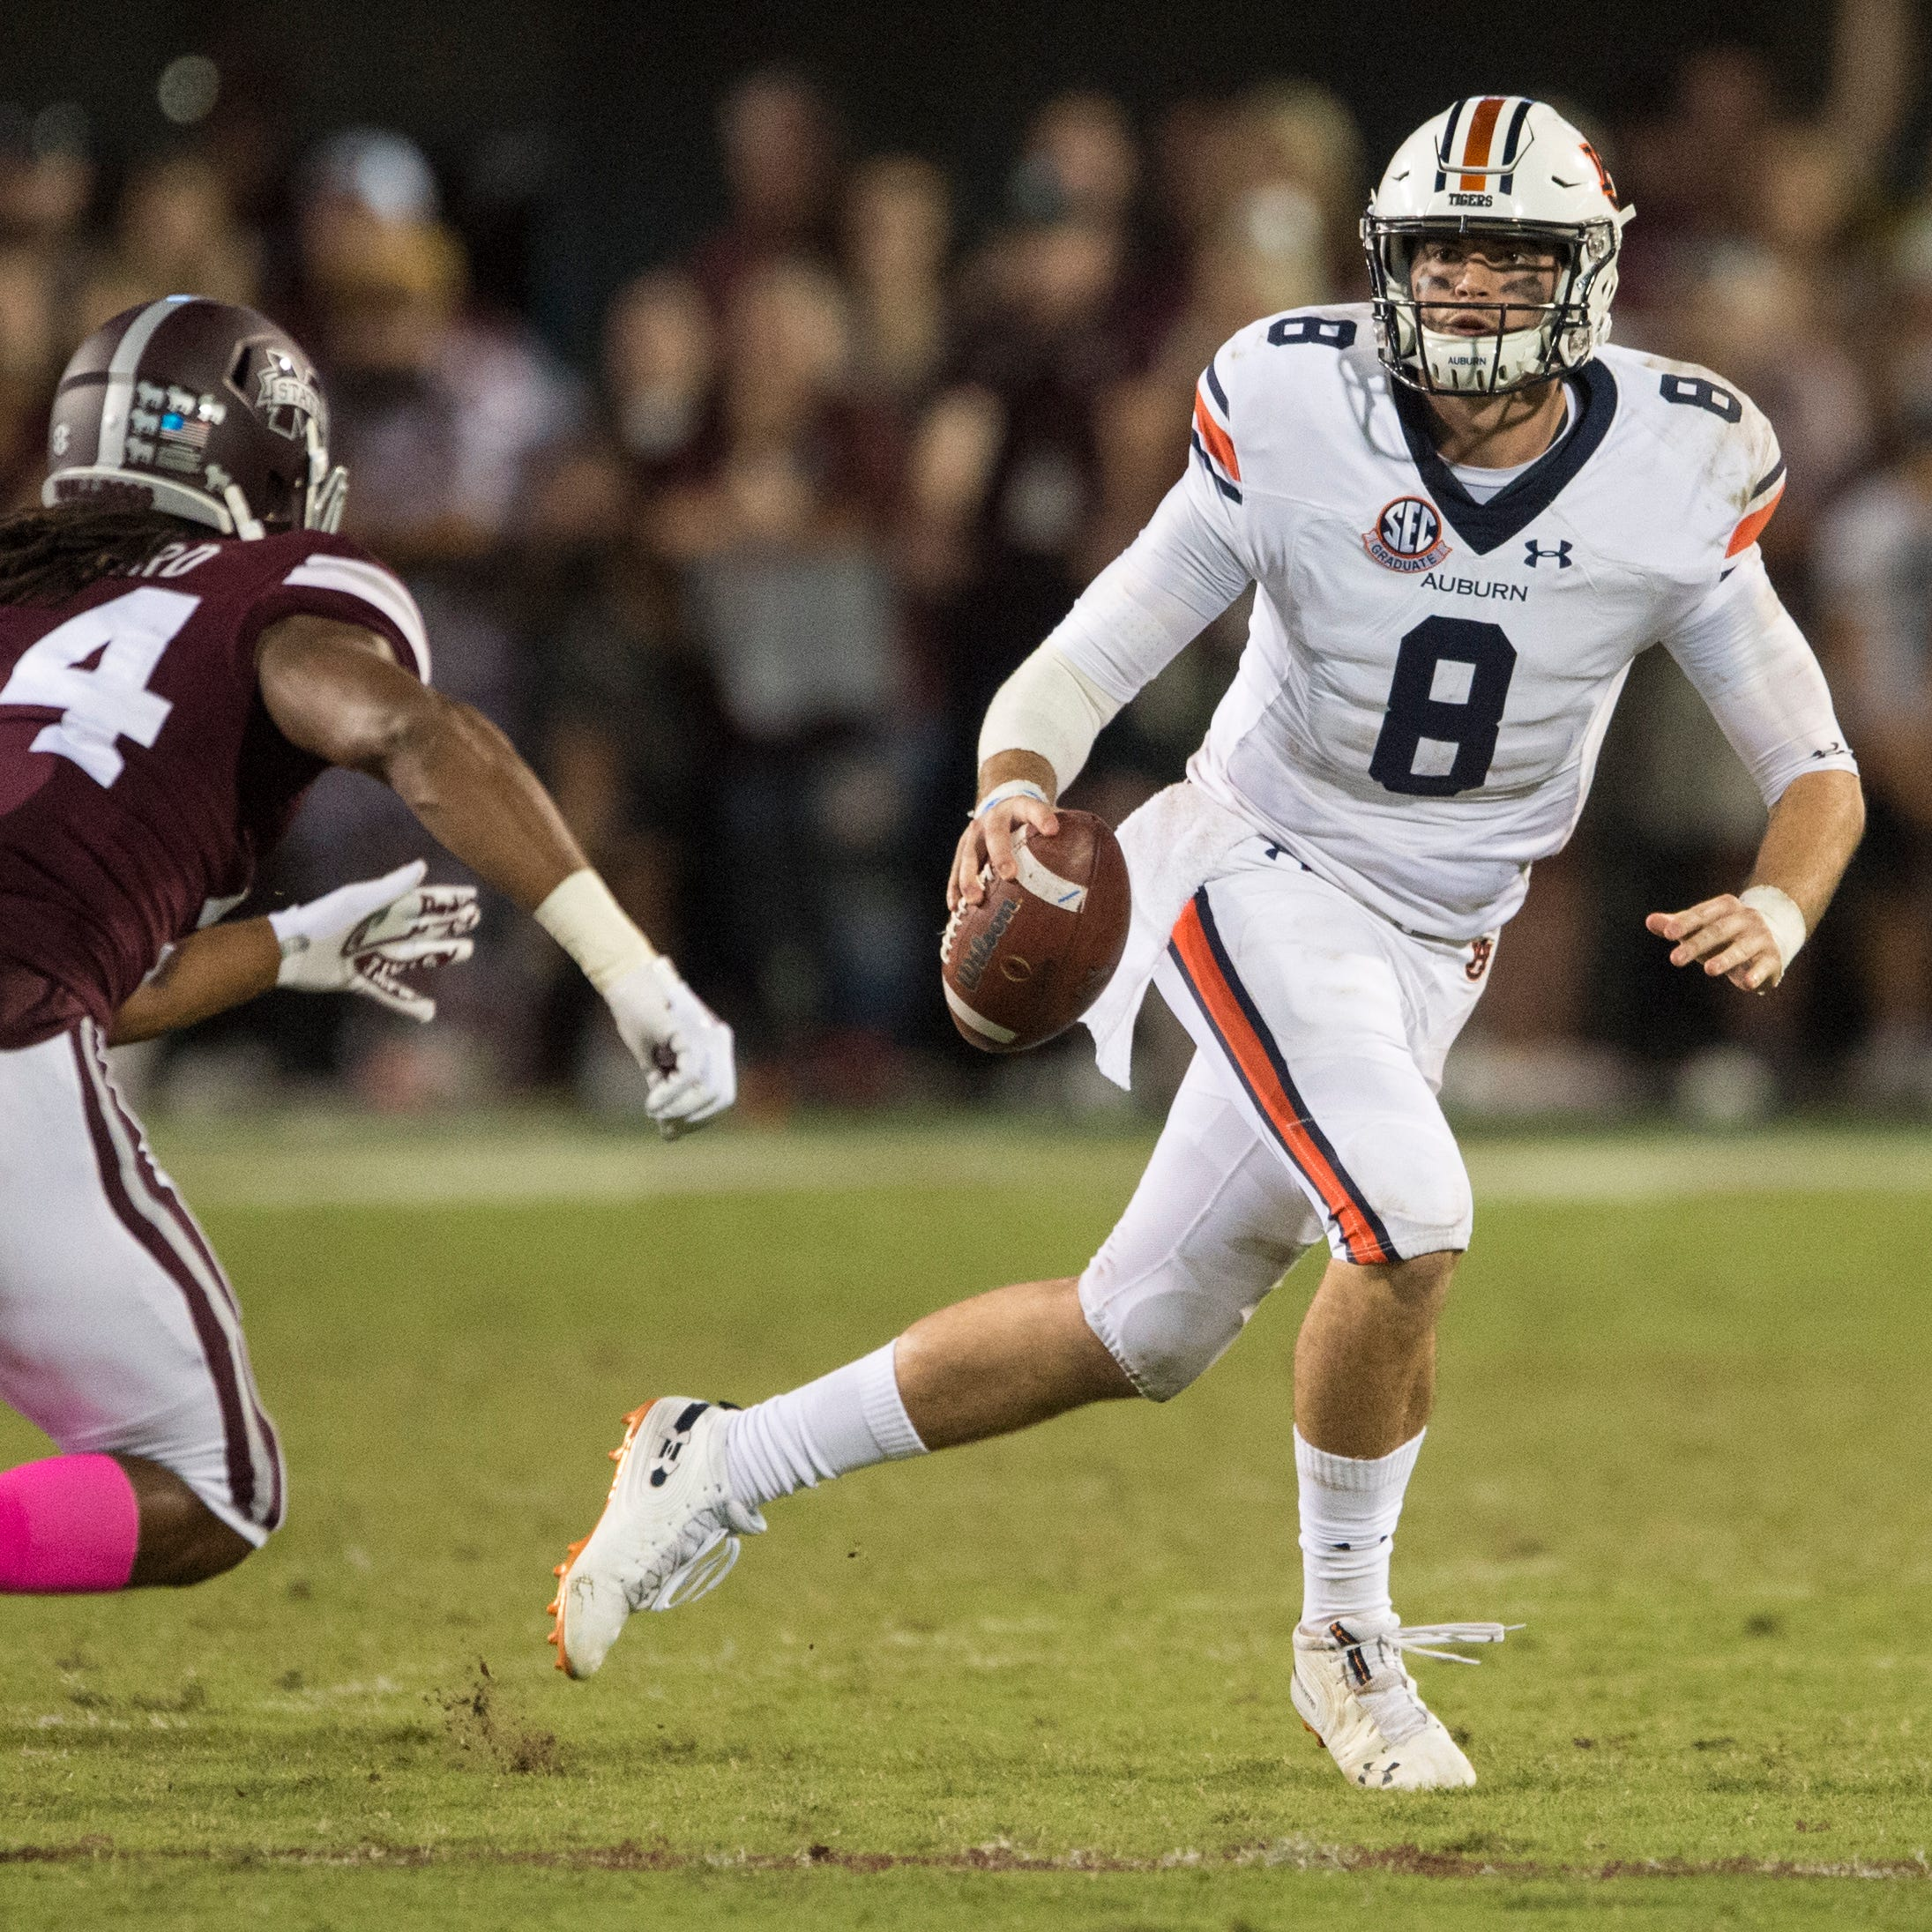 UT Vols vs. Auburn: Predictions don't have Tigers covering the big point spread